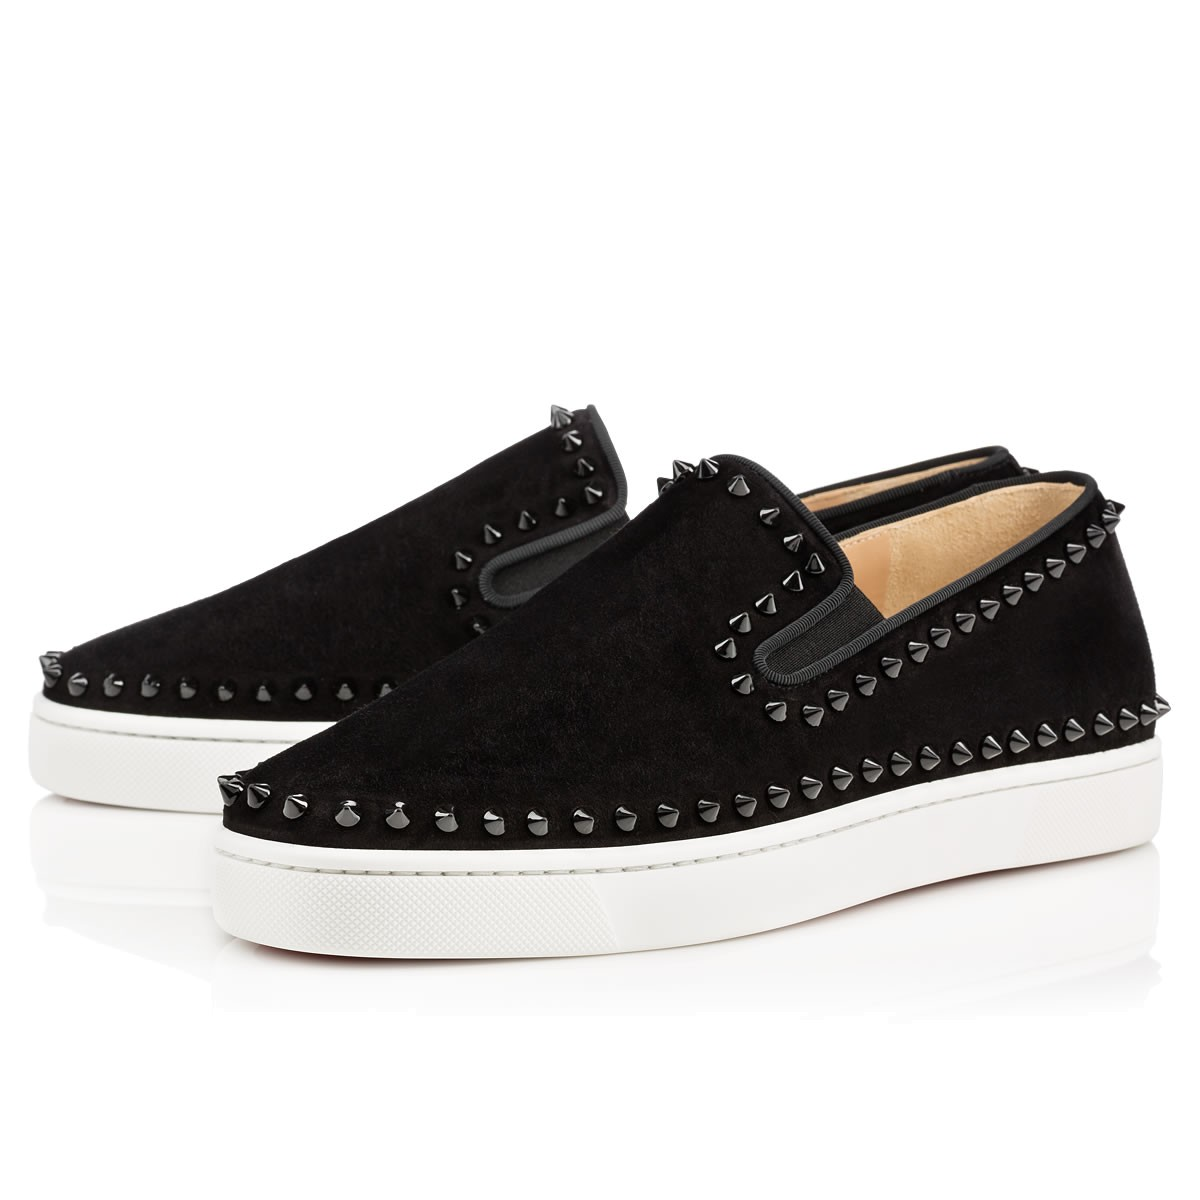 Christian Louboutin Roller-Boat Spiked Slip-On Trainers In Black ... f6ff293c2